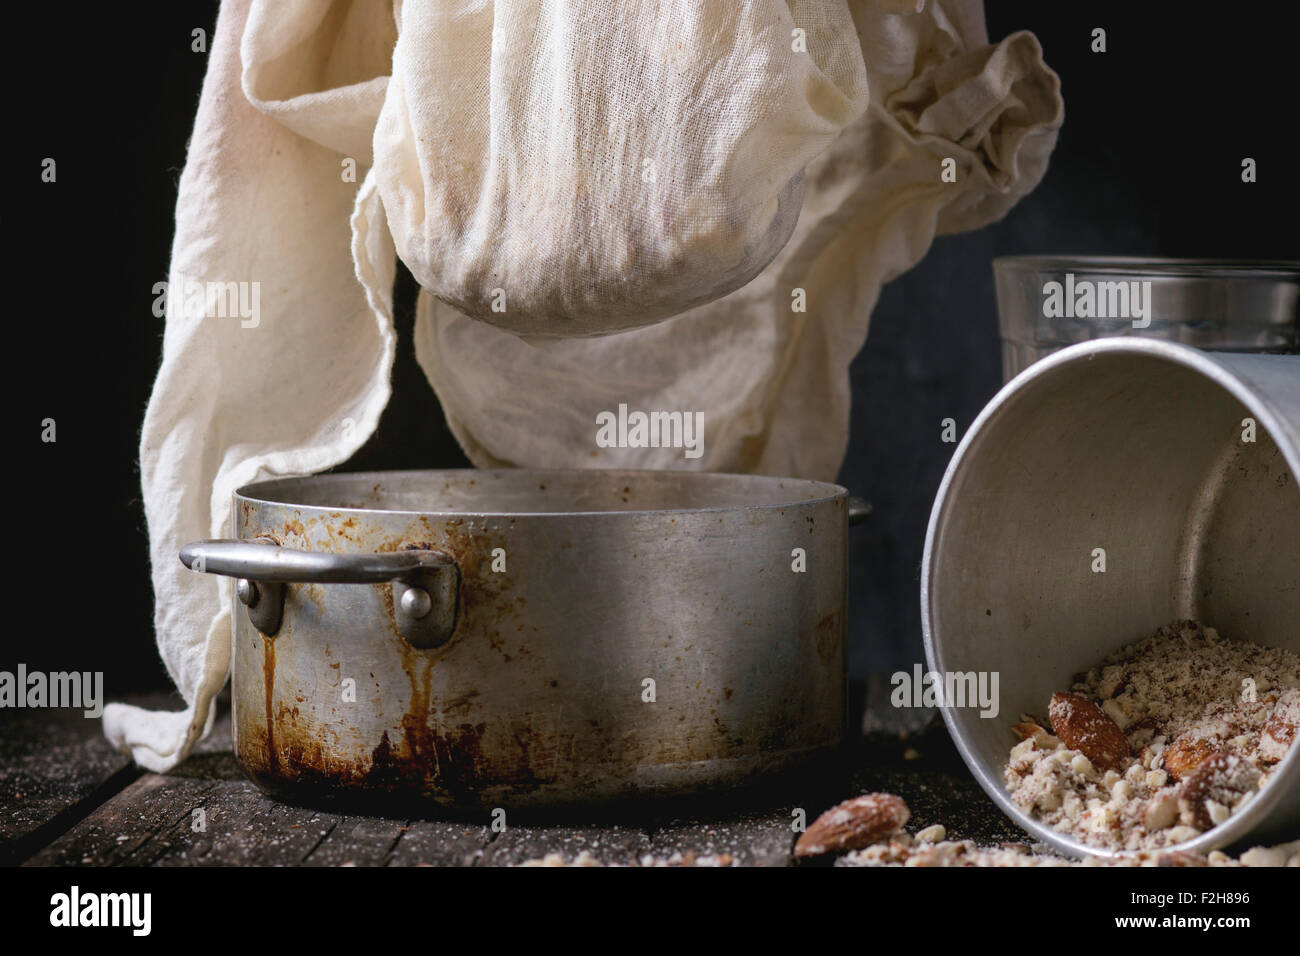 Process of making non-dairy almond milk - extraction of grain almond via white textile at vintage pan over old wooden - Stock Image